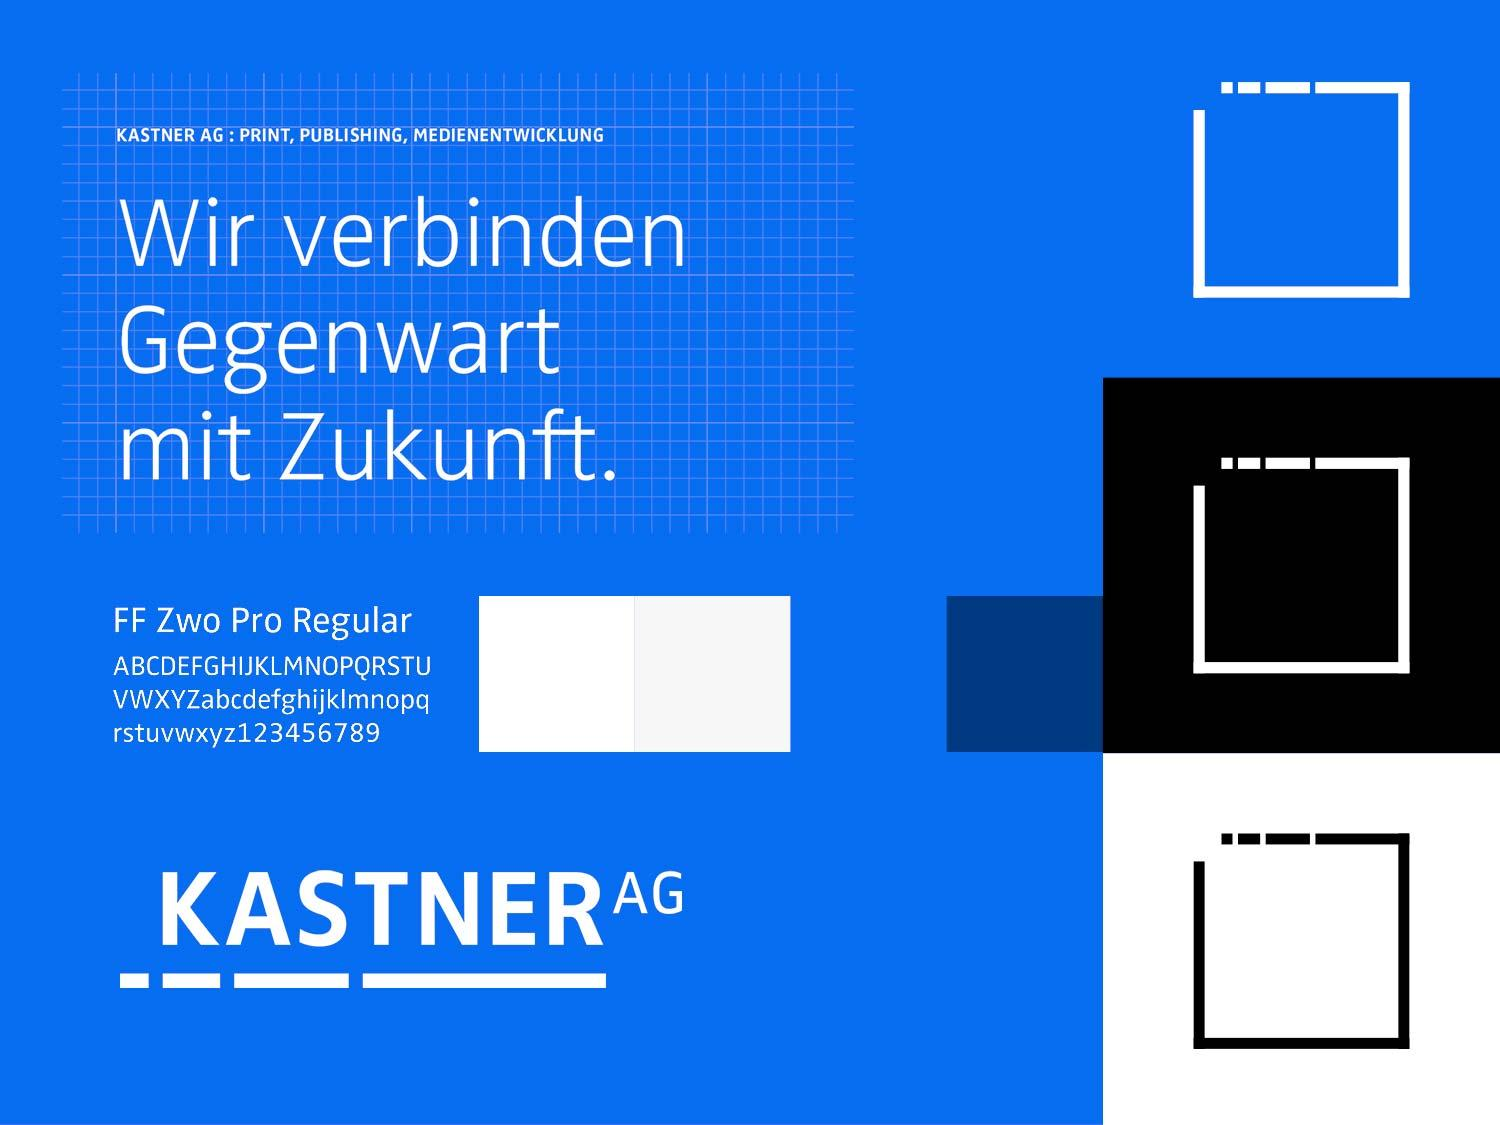 The picture shows design elements of Kastner AG's brand identity.